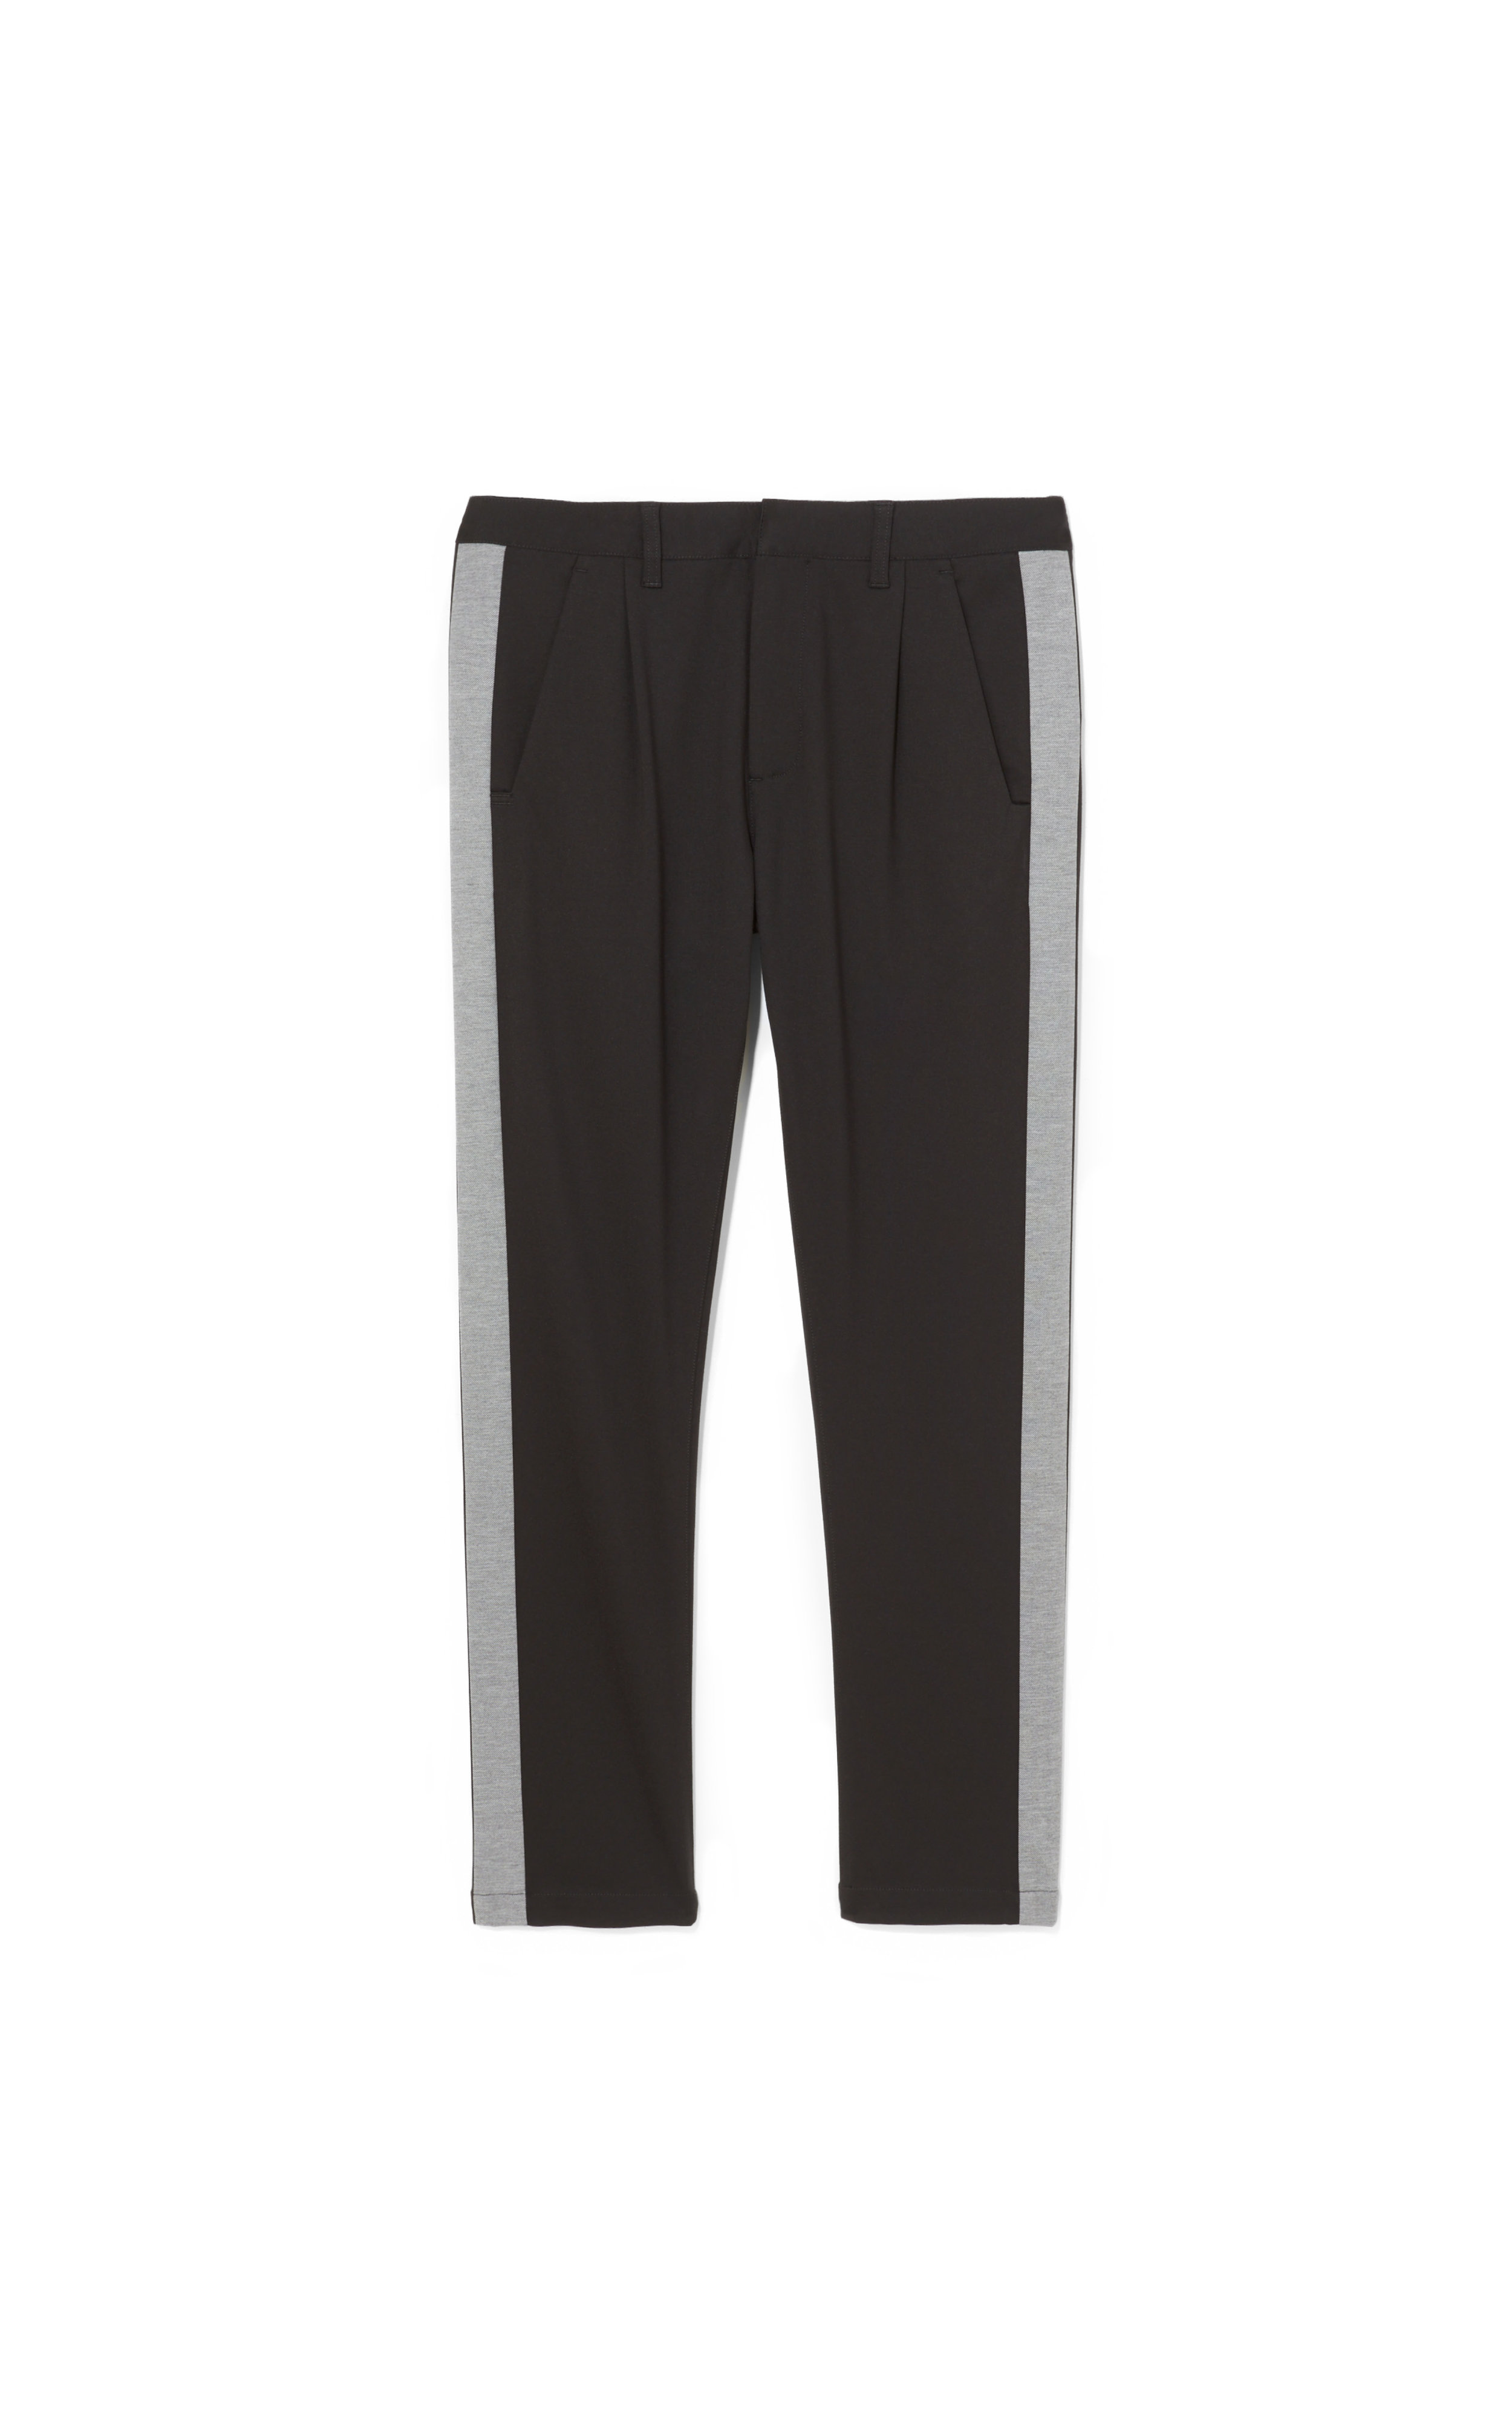 Kenneth Cole, $58.99